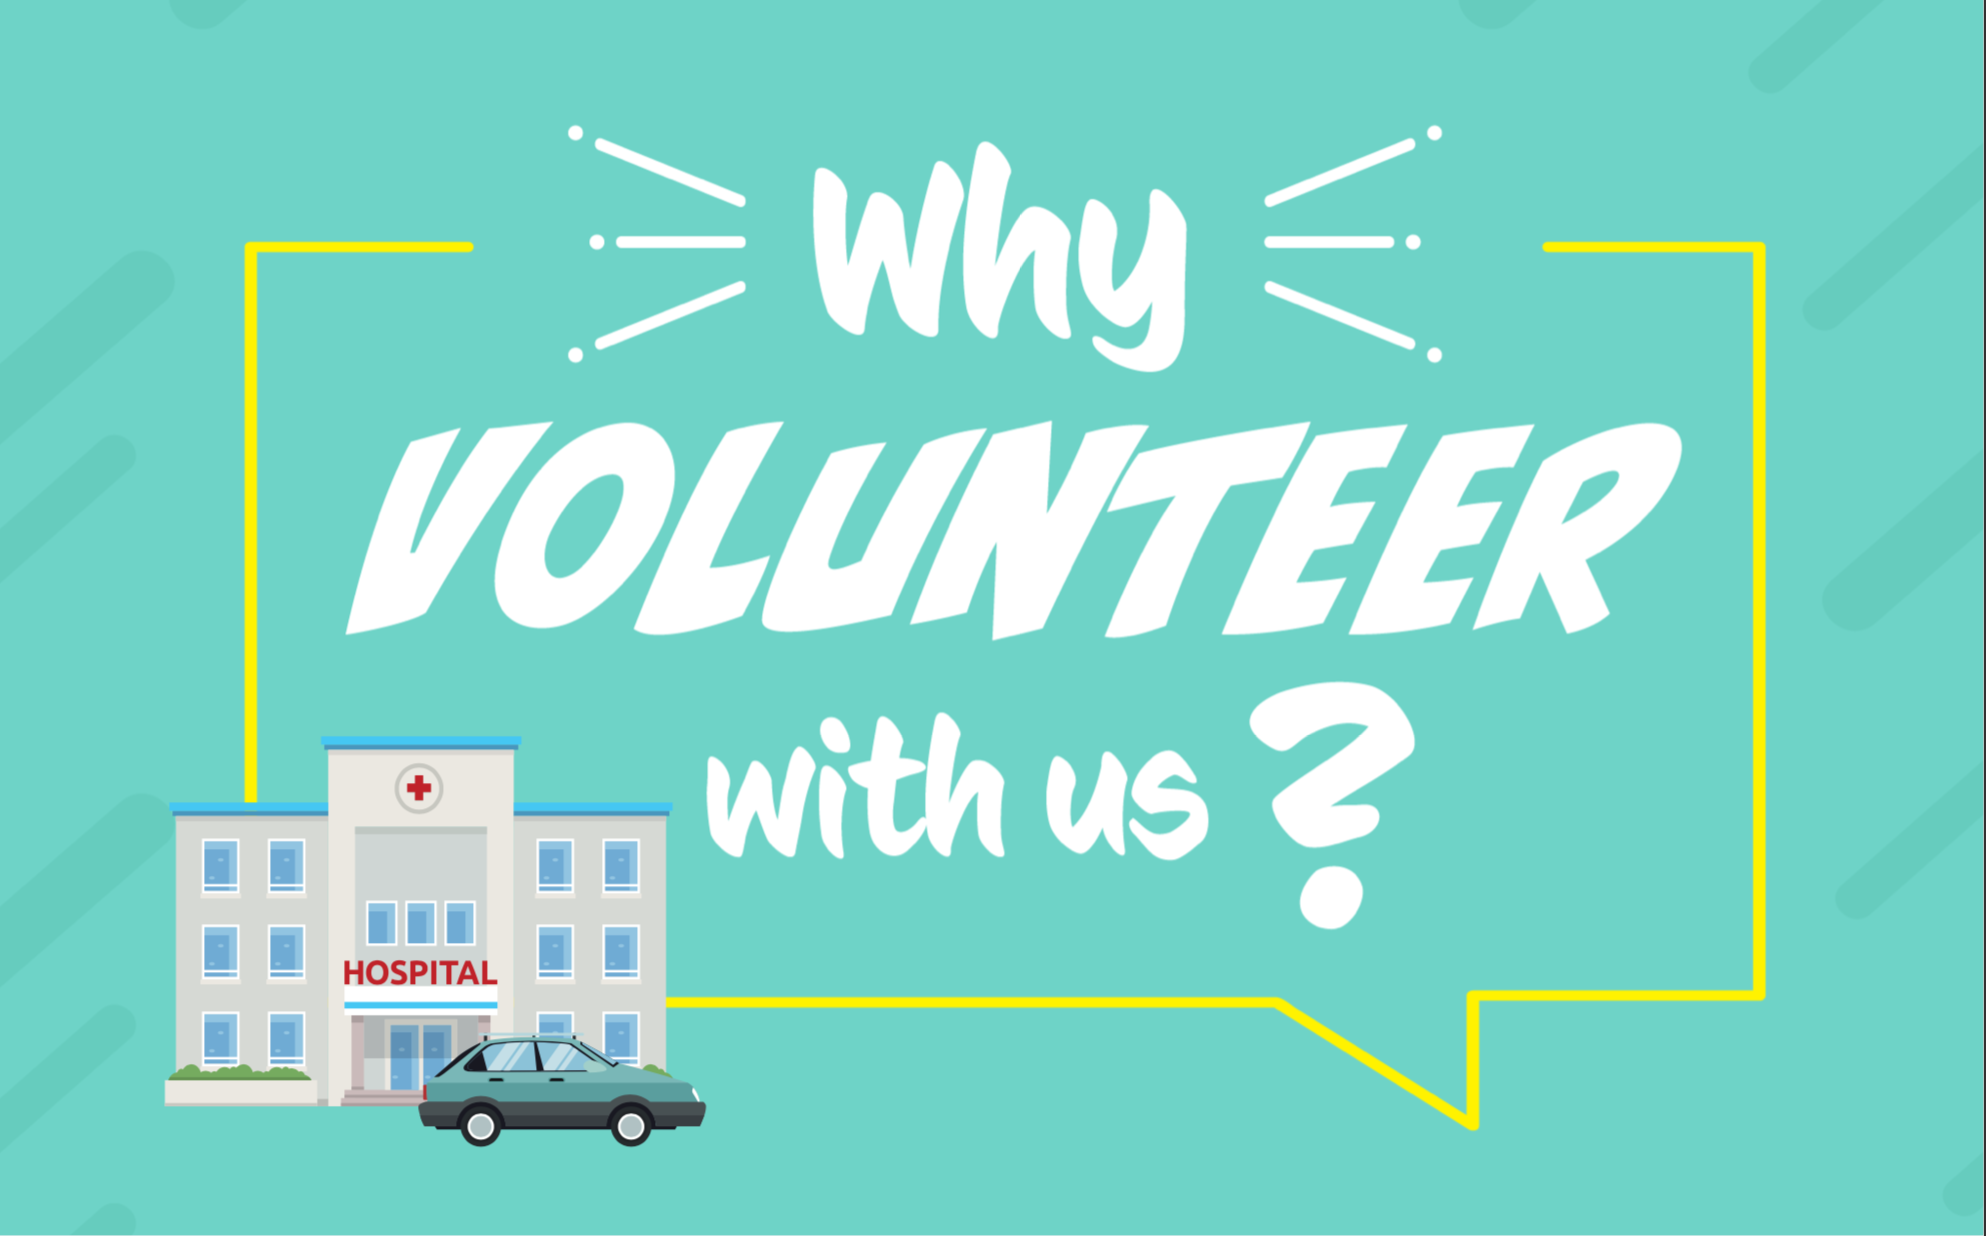 Why volunteer with us?